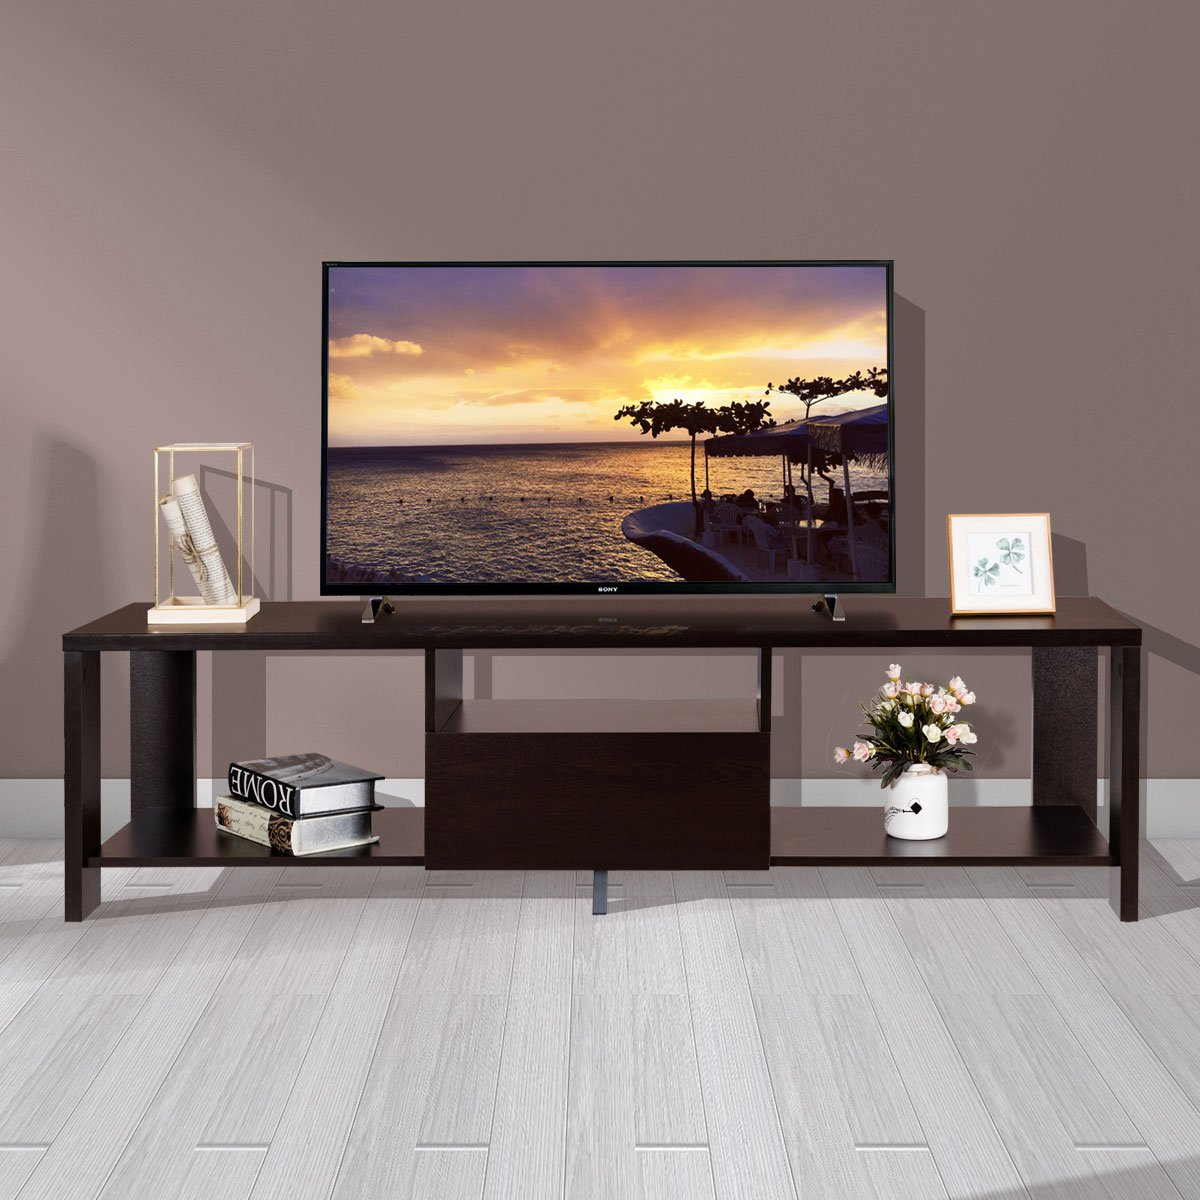 Tangkula TV Stand Home Living Room Modern Wood Entertainment Media Center Storage Console w Drawer and Display Shelf TV Cabinet Espresso Stand